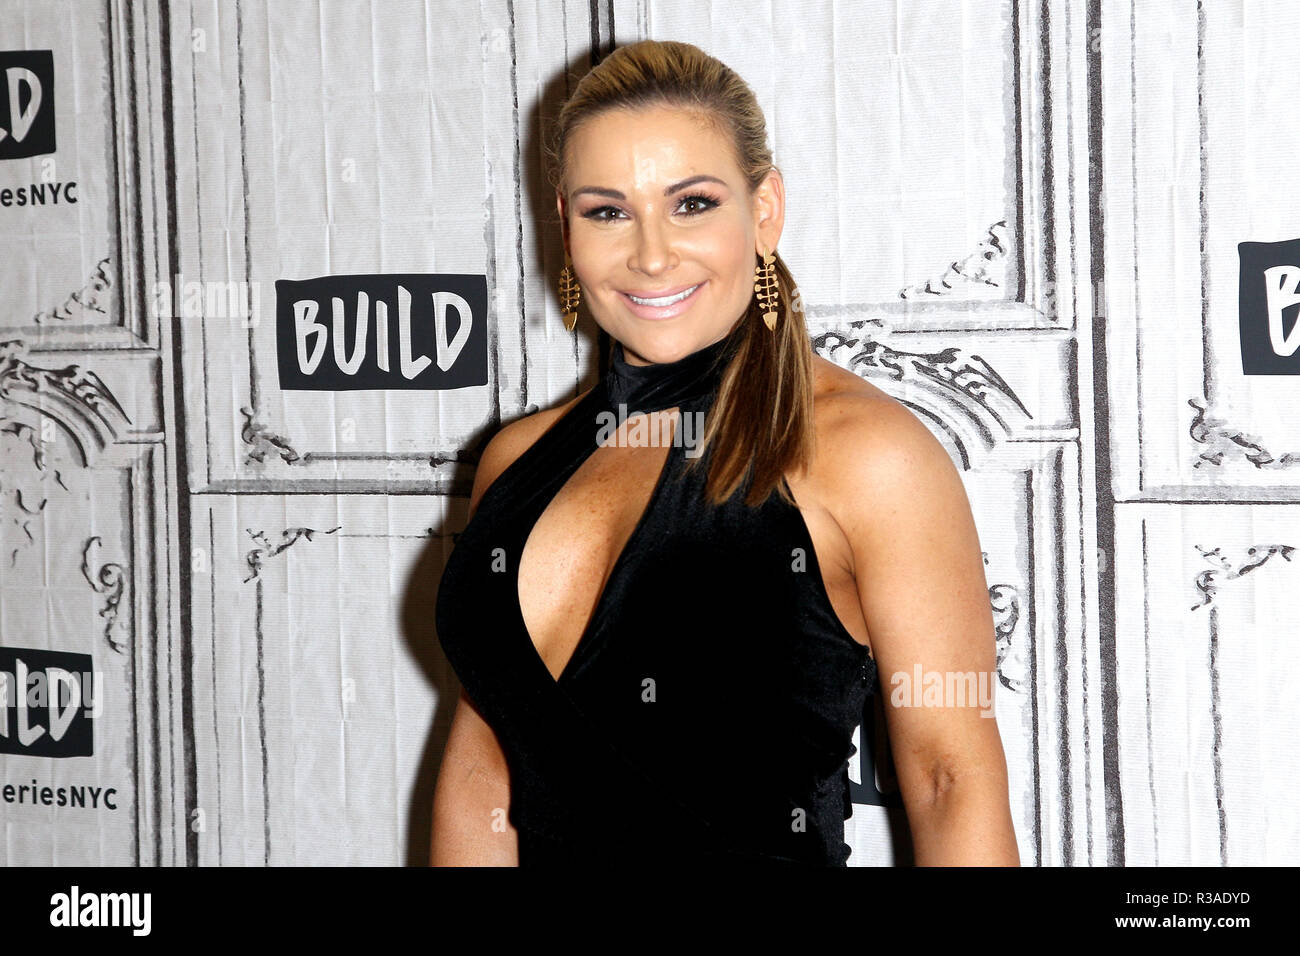 Celebrity Natalya Neidhart nude (73 photos), Tits, Hot, Boobs, swimsuit 2015